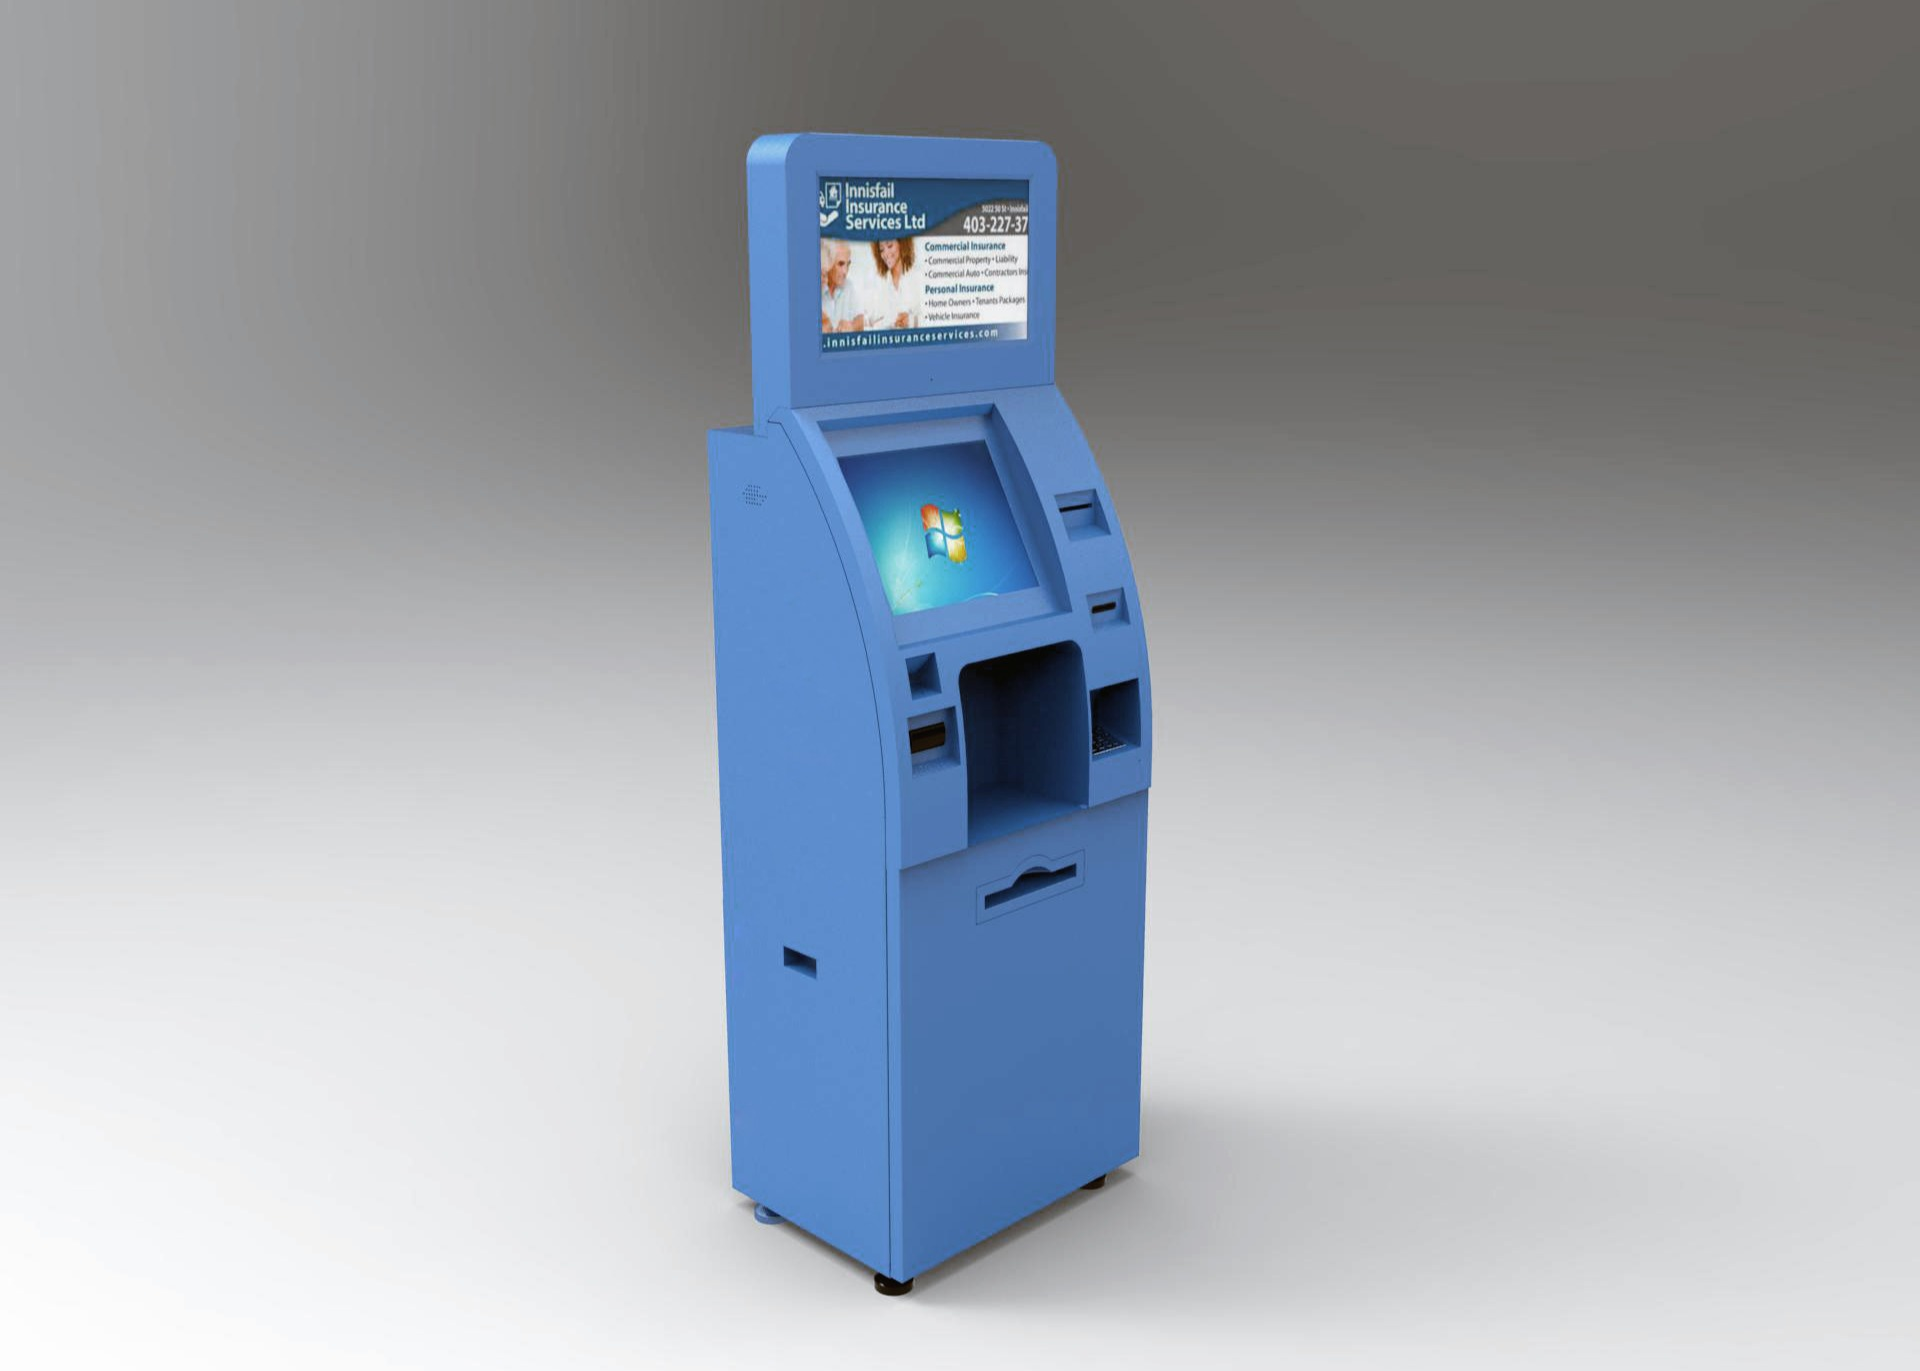 Freestanding Intelligent Multi functional Touch Self Service Kiosk With Bill Validator Acceptor